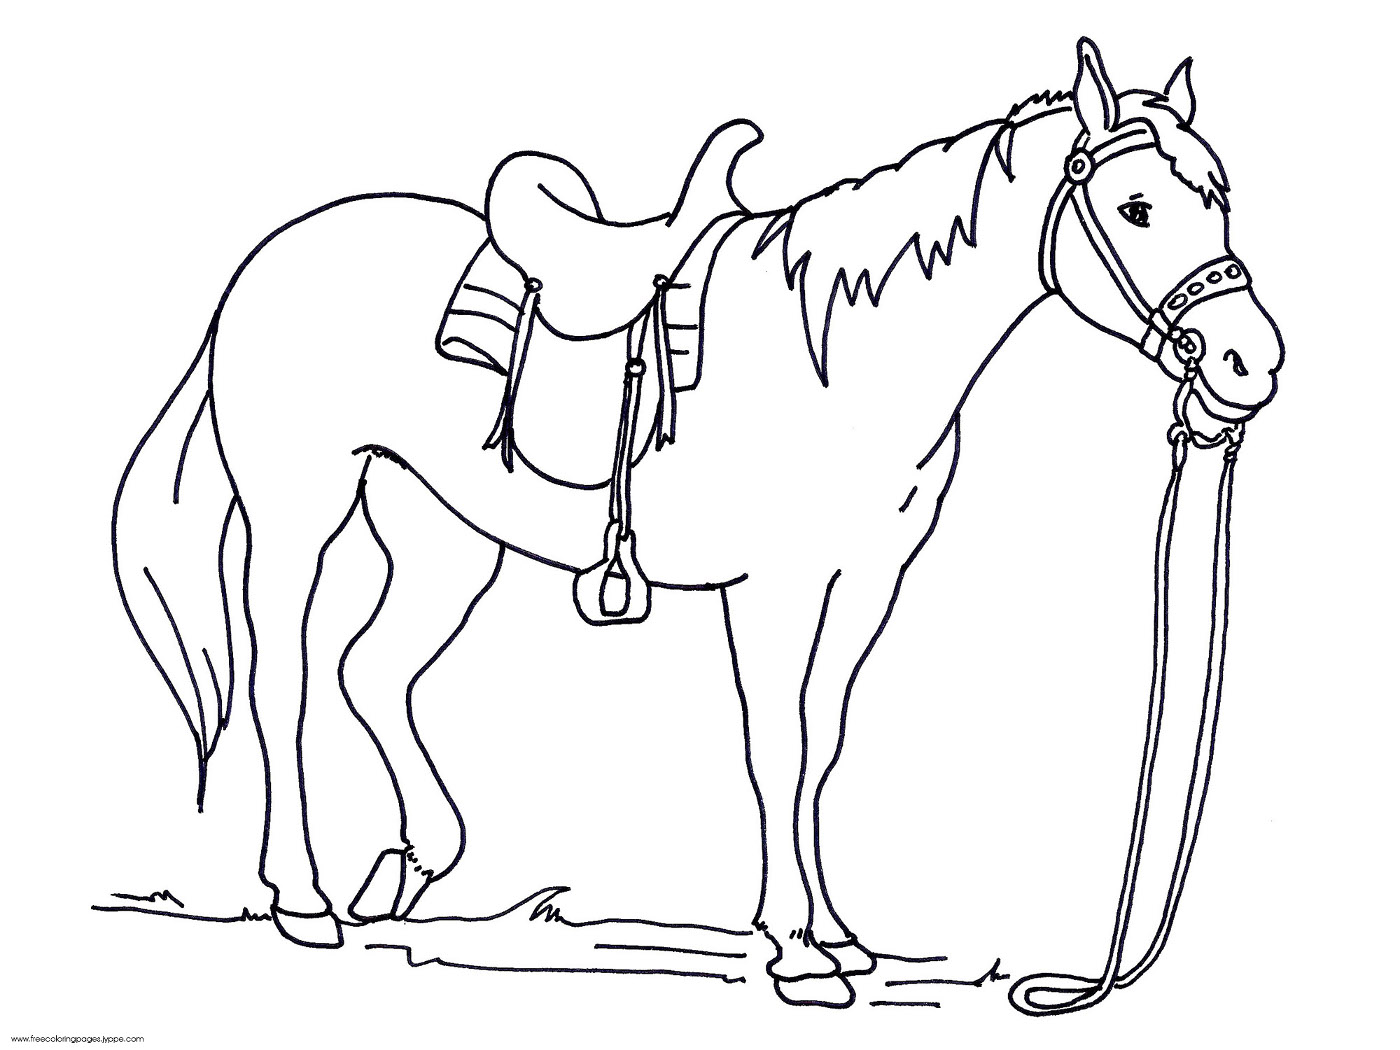 Printable Horse Jumping Coloring Pages With Show Horse Coloring Pages Coloring Pages For Kids Coloring